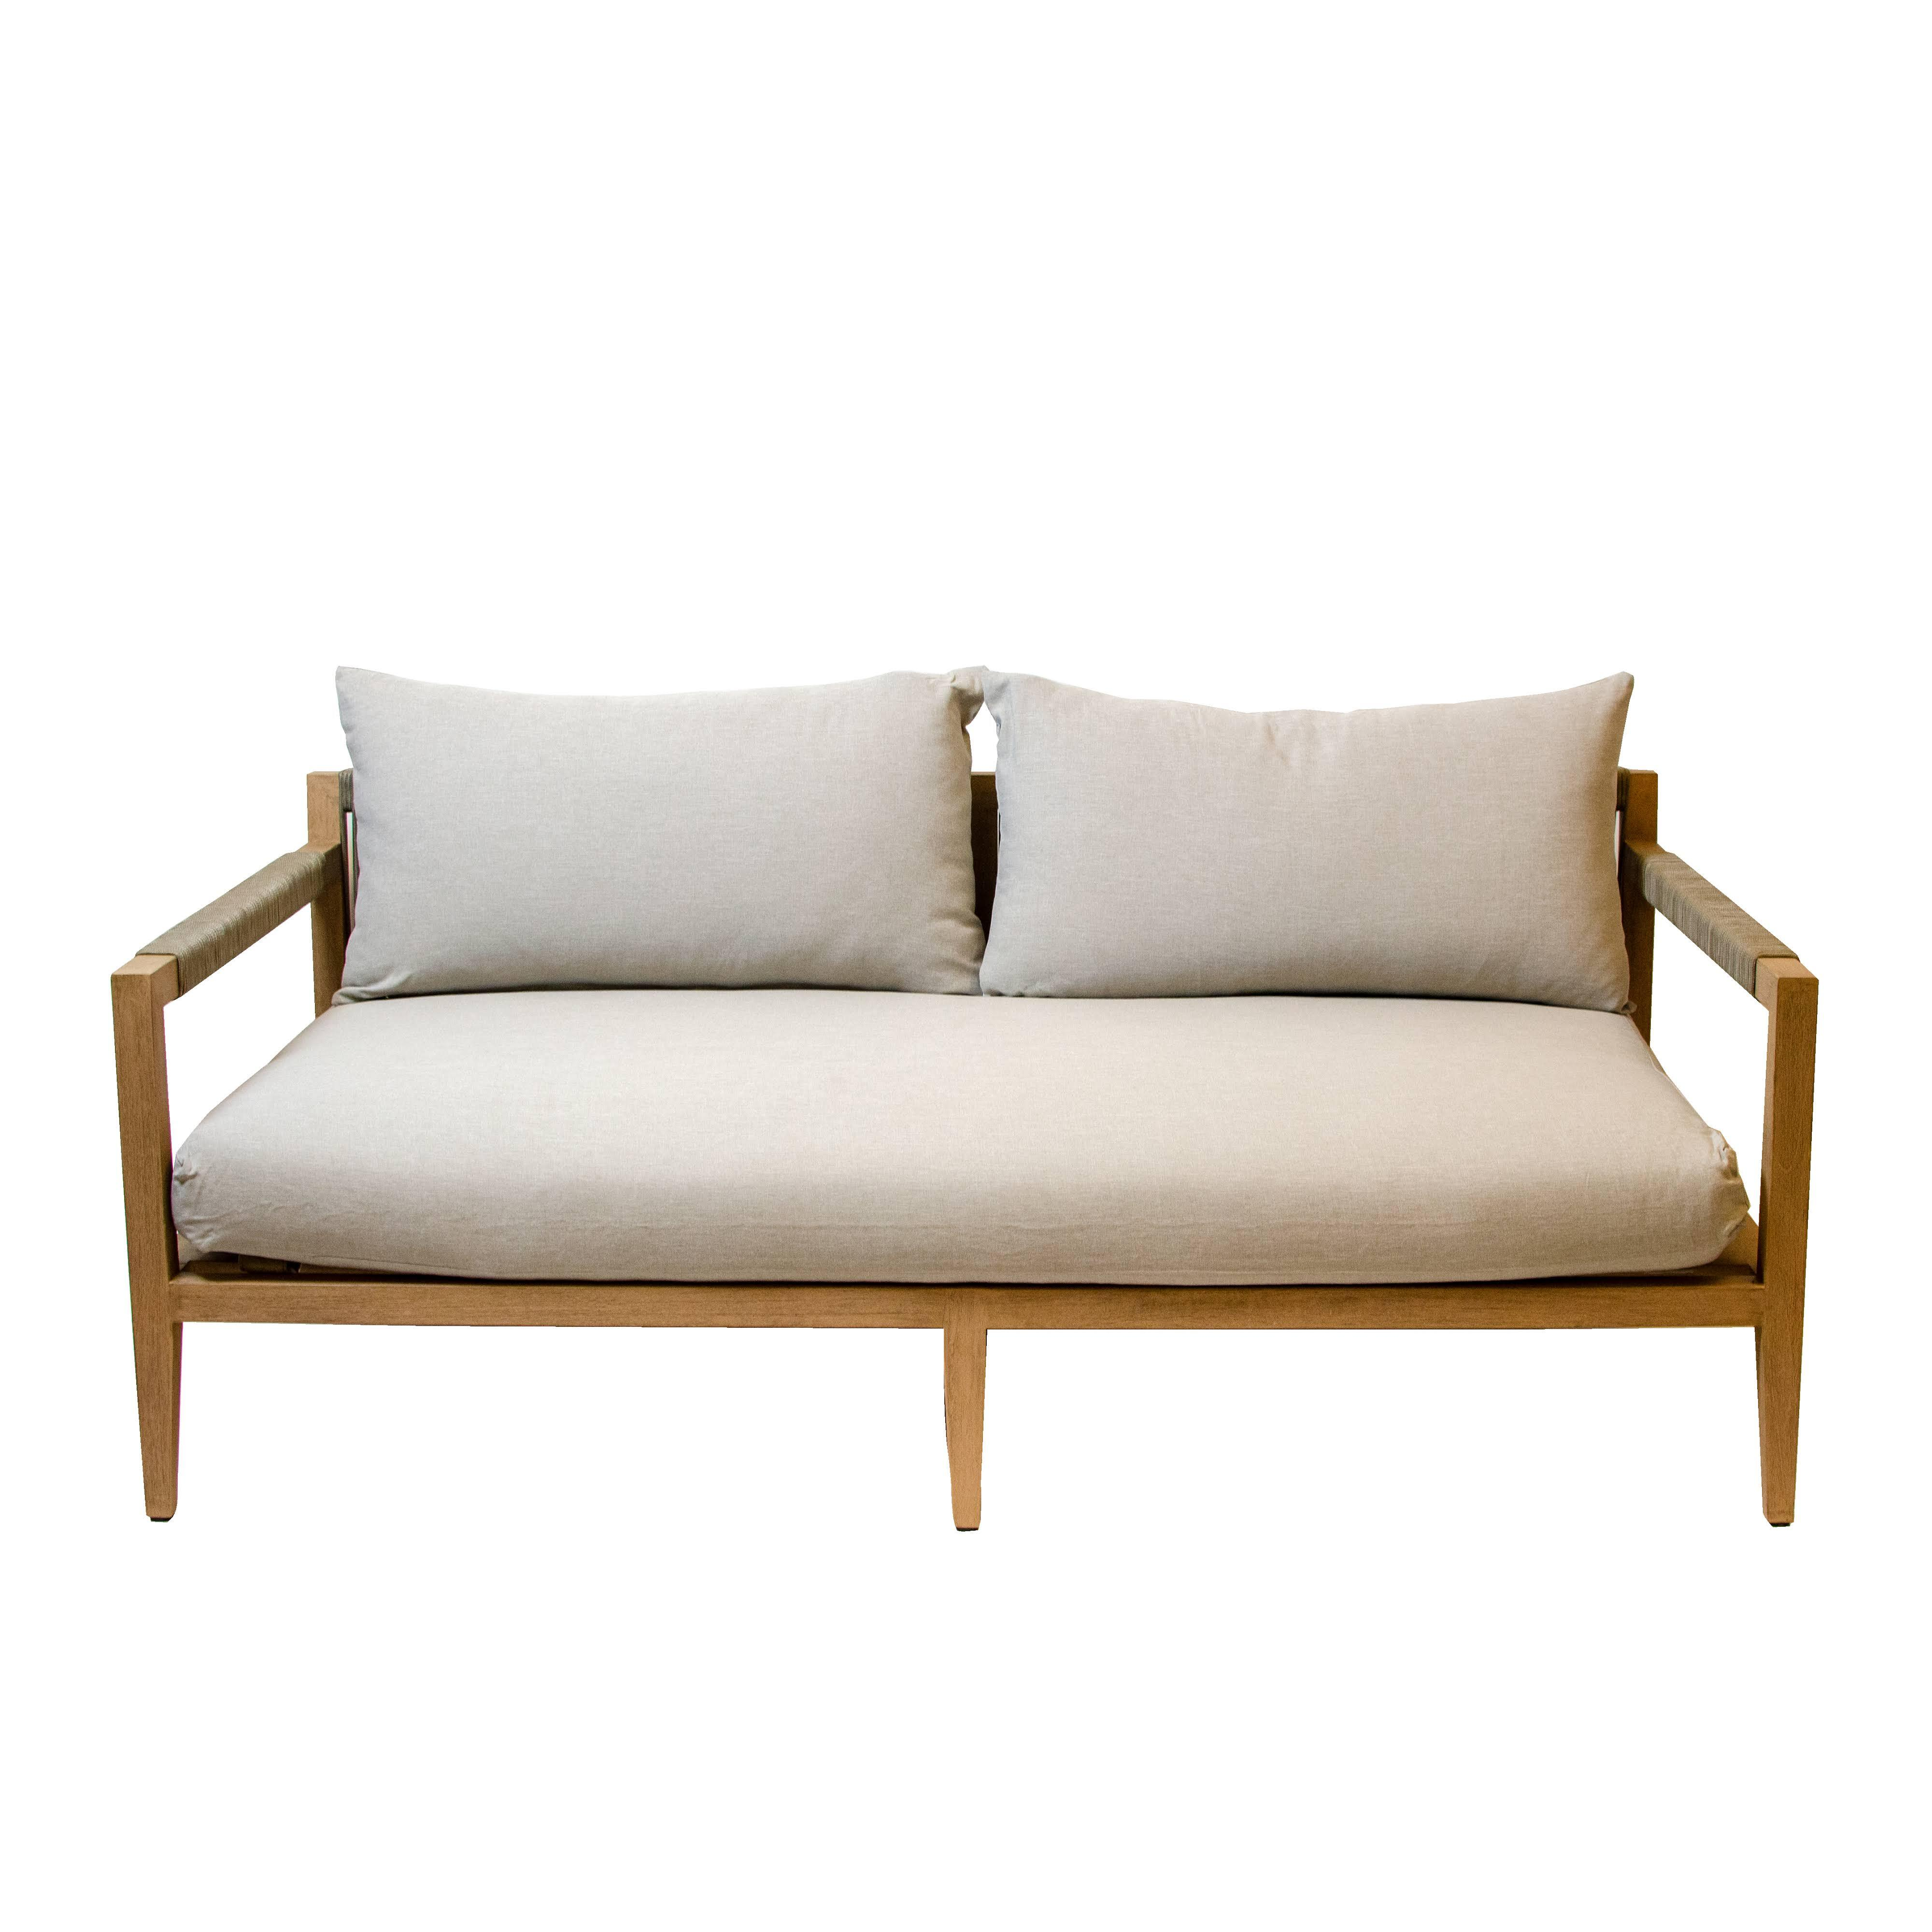 New Neutral Couch Full